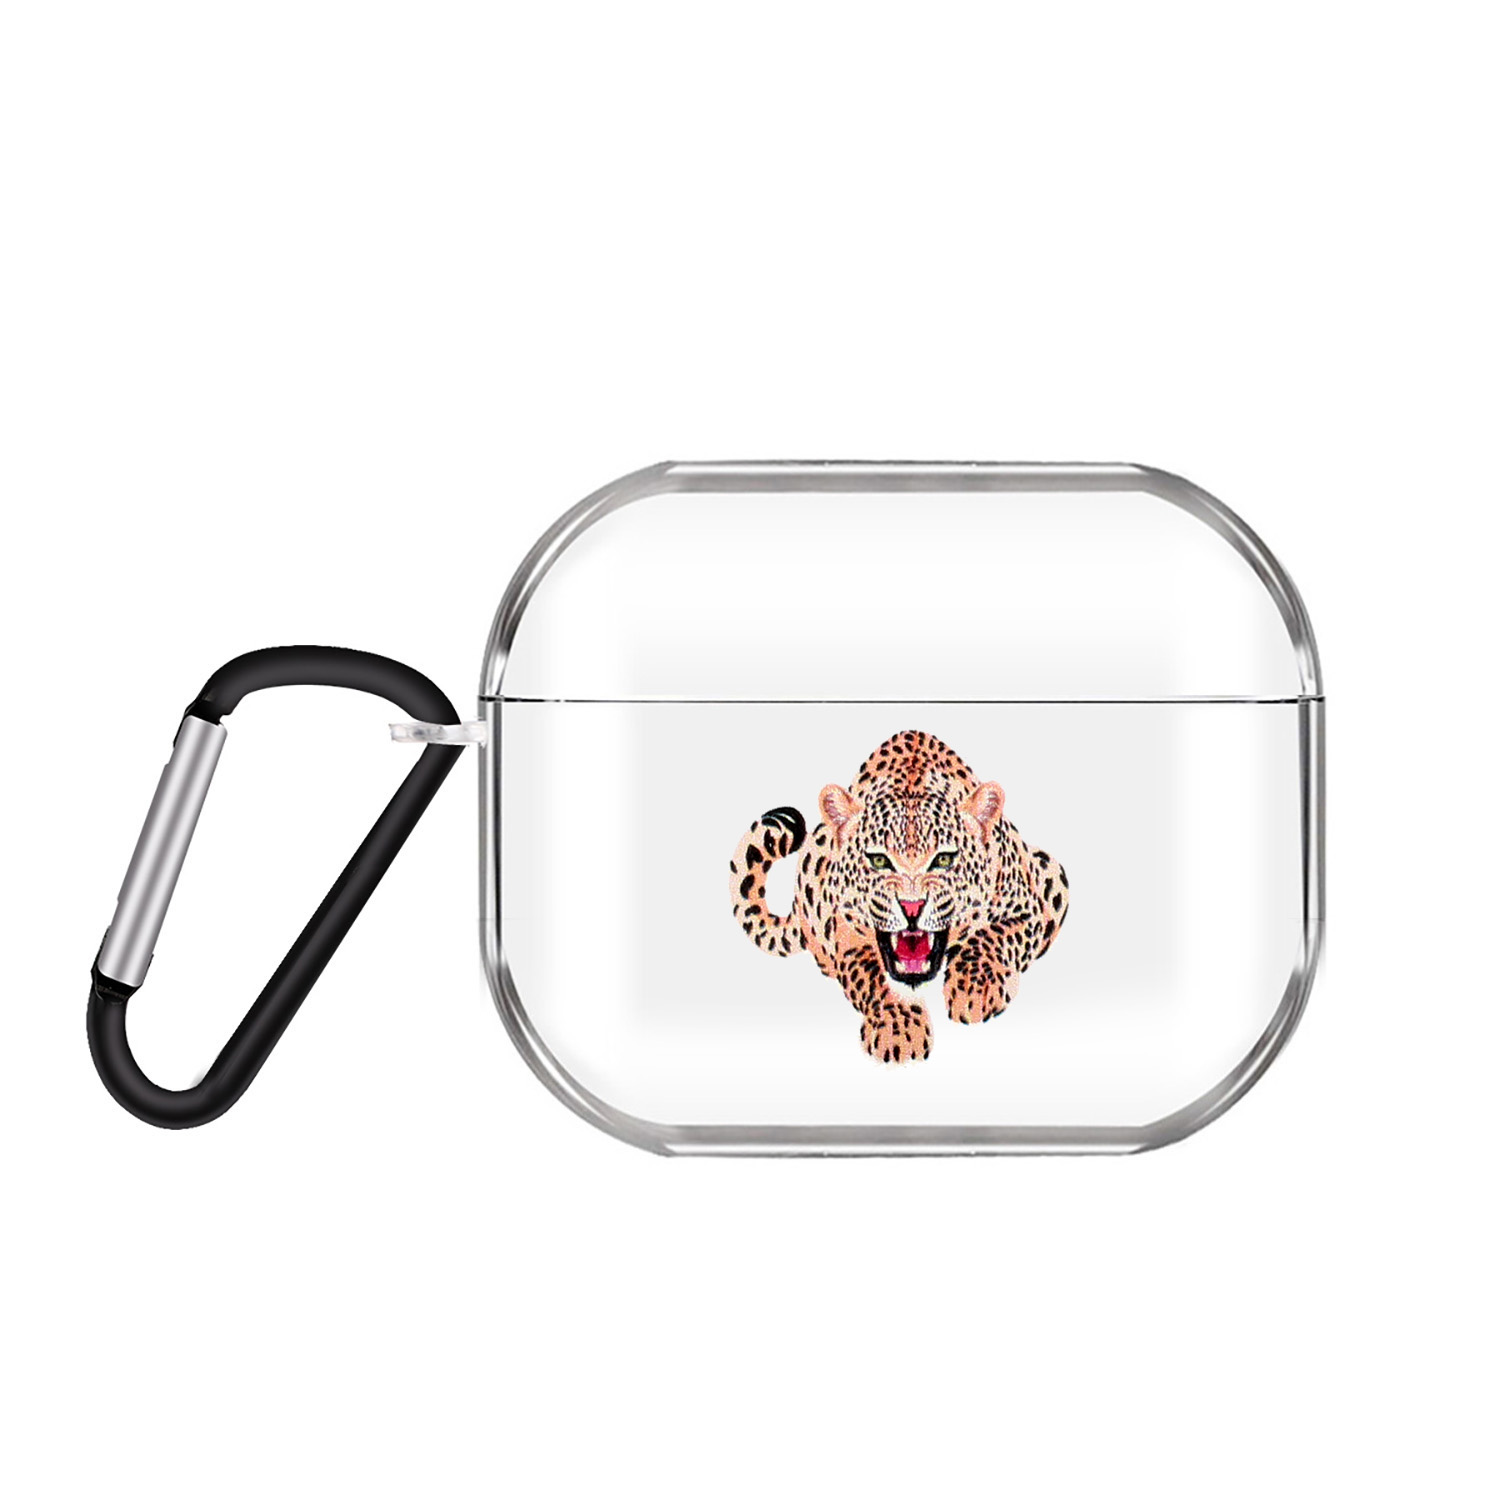 For AirPods Pro Headphones Case Clear Cute Earphone Shell with Metal Hook Overall Protection Cover 16 tigers